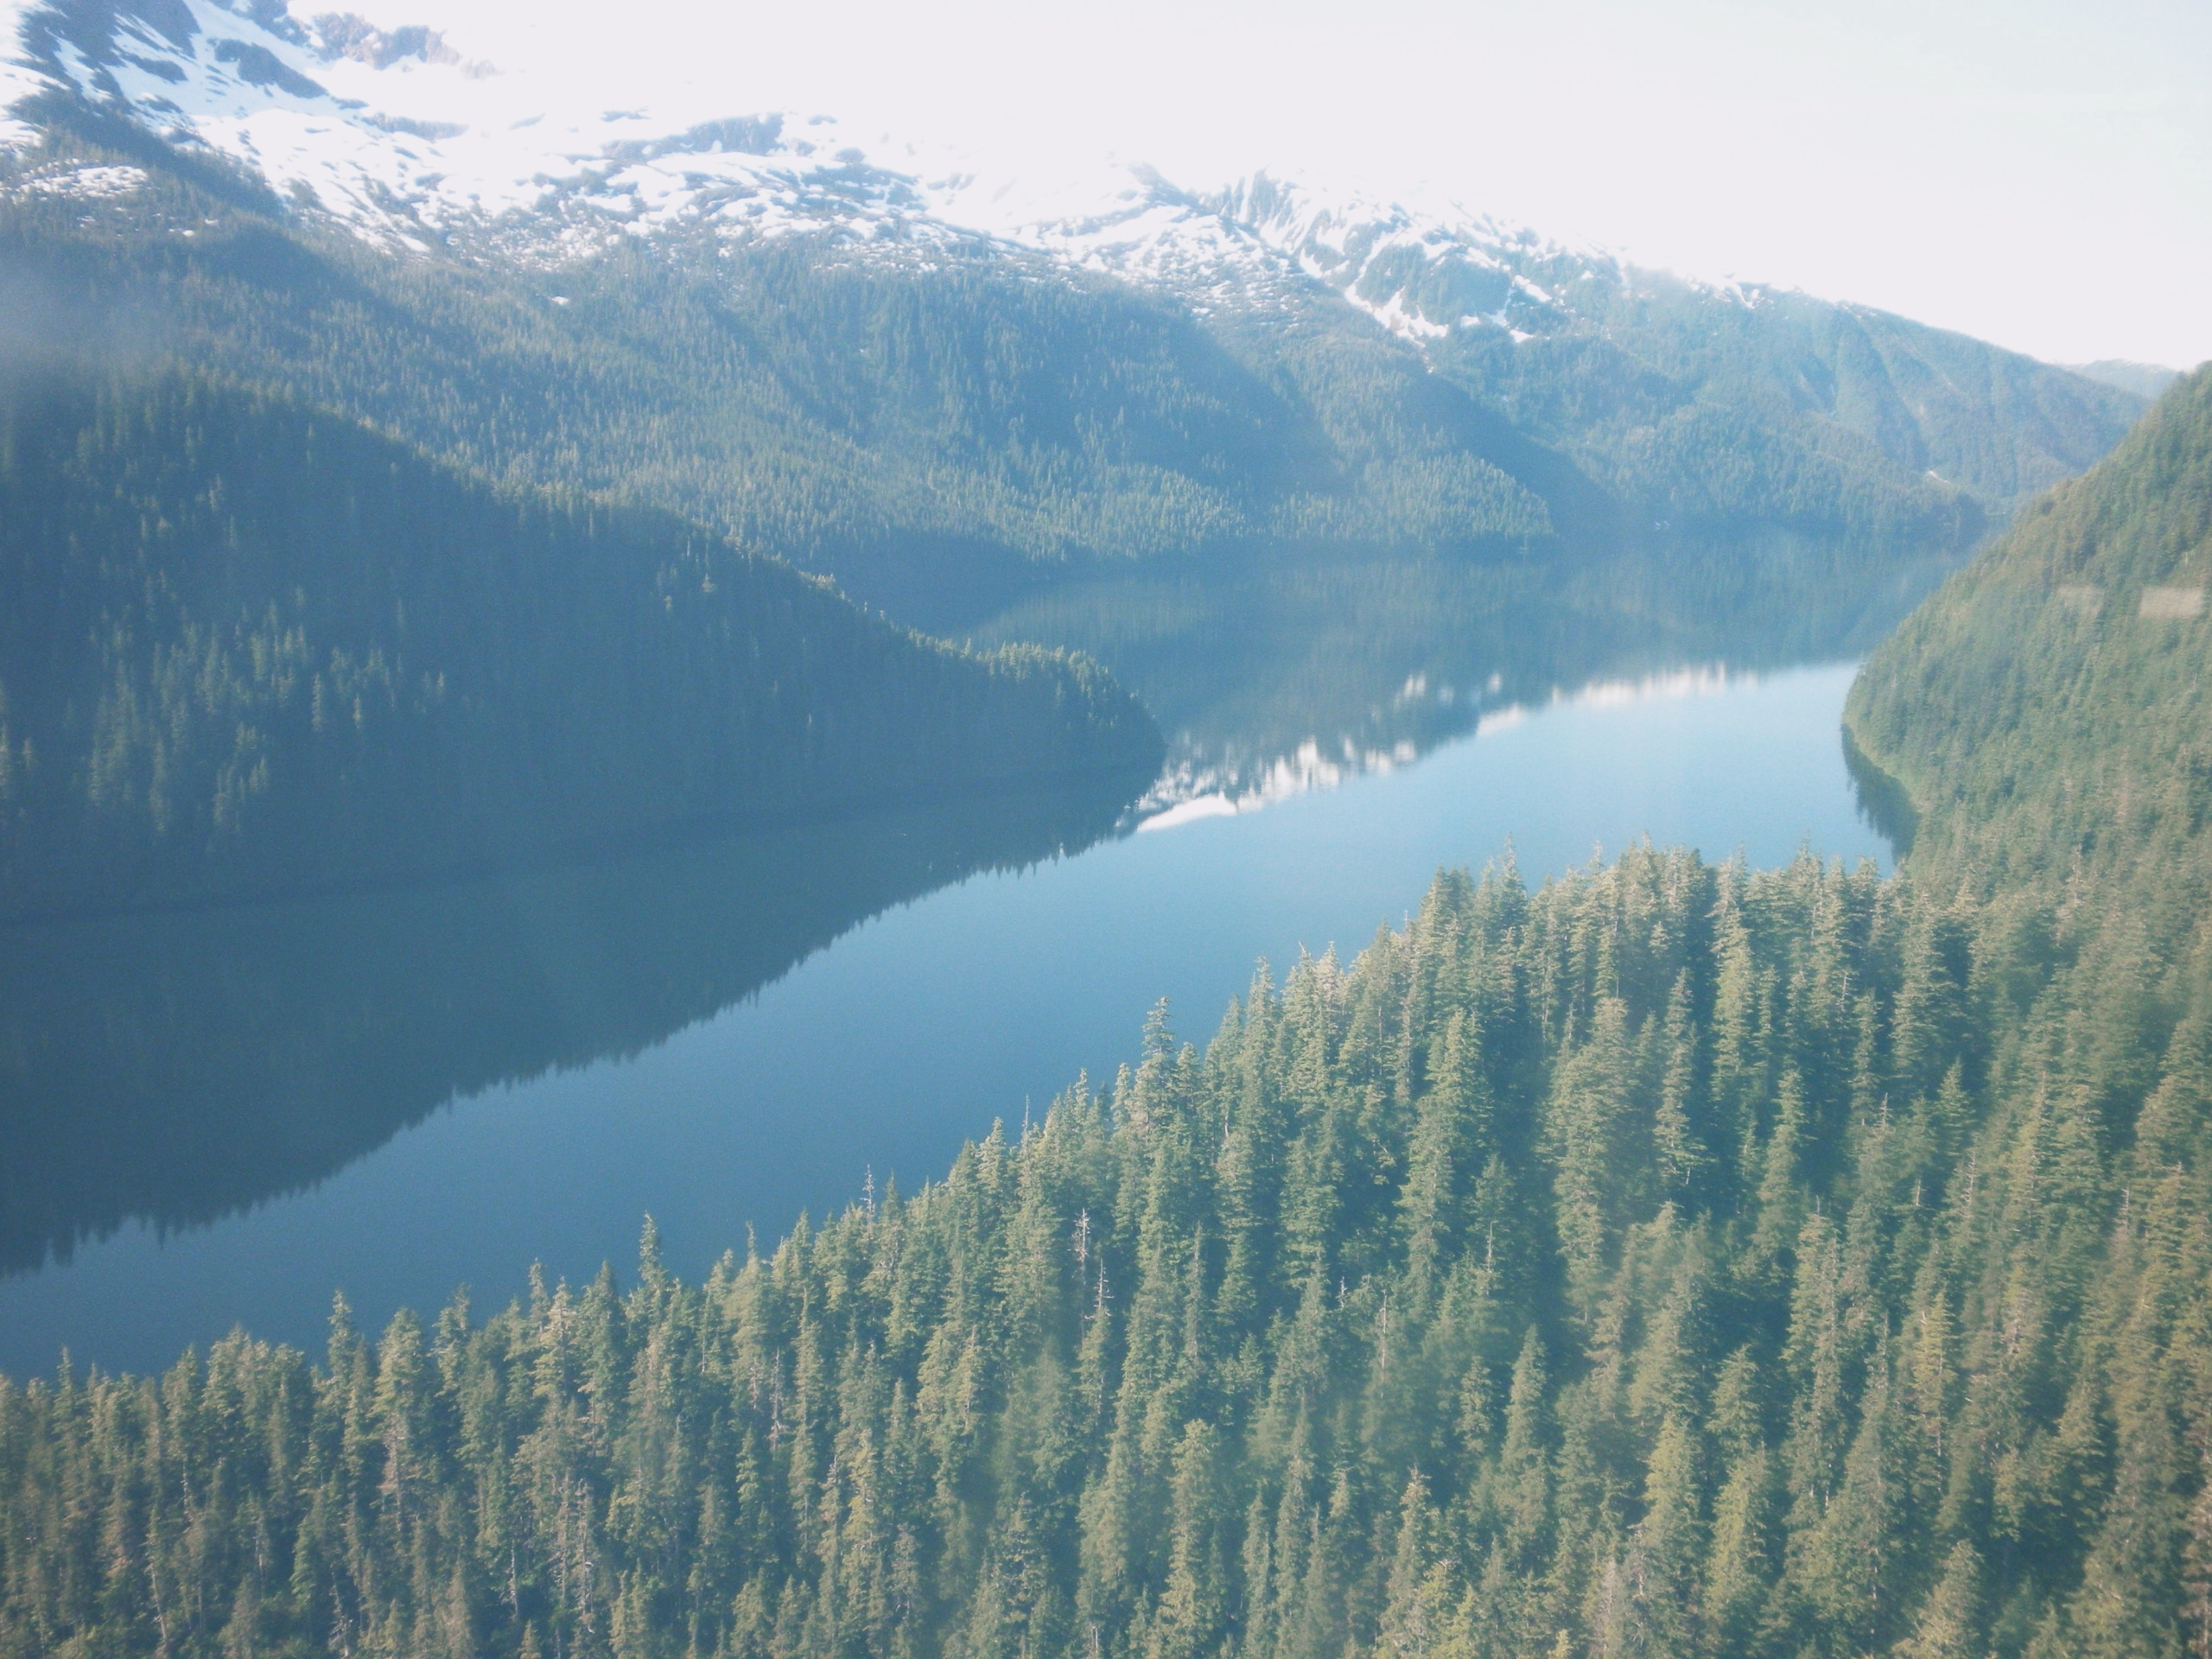 Juneau Hydropower Receives Special Use Permit from USFS to begin Sweetheart Lake Hydropower Construction in 2020.